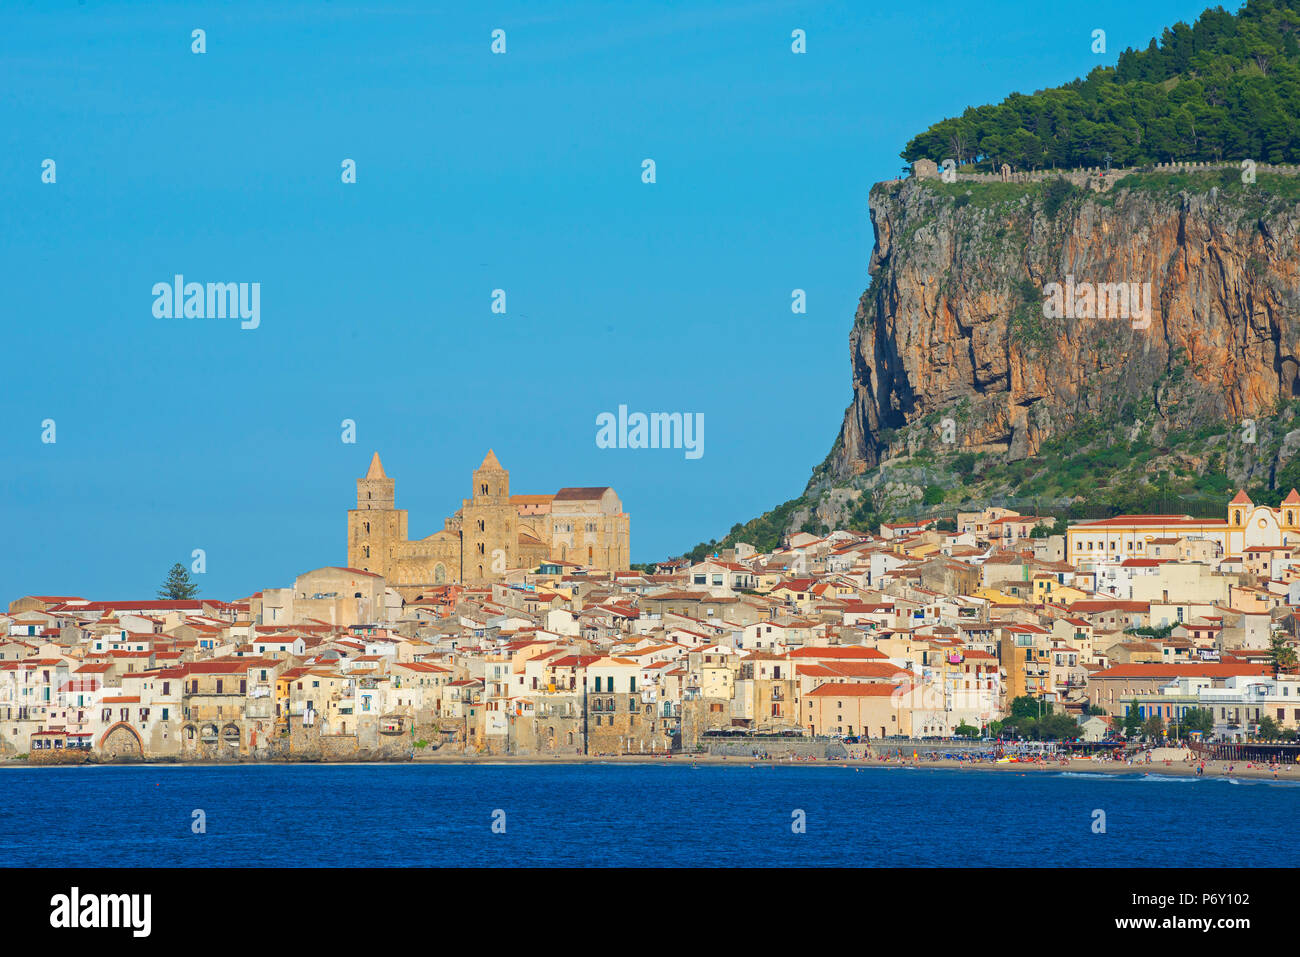 Old town, cathedral and cliff La Rocca, Cefalu, Sicily, Italy, Europe - Stock Image